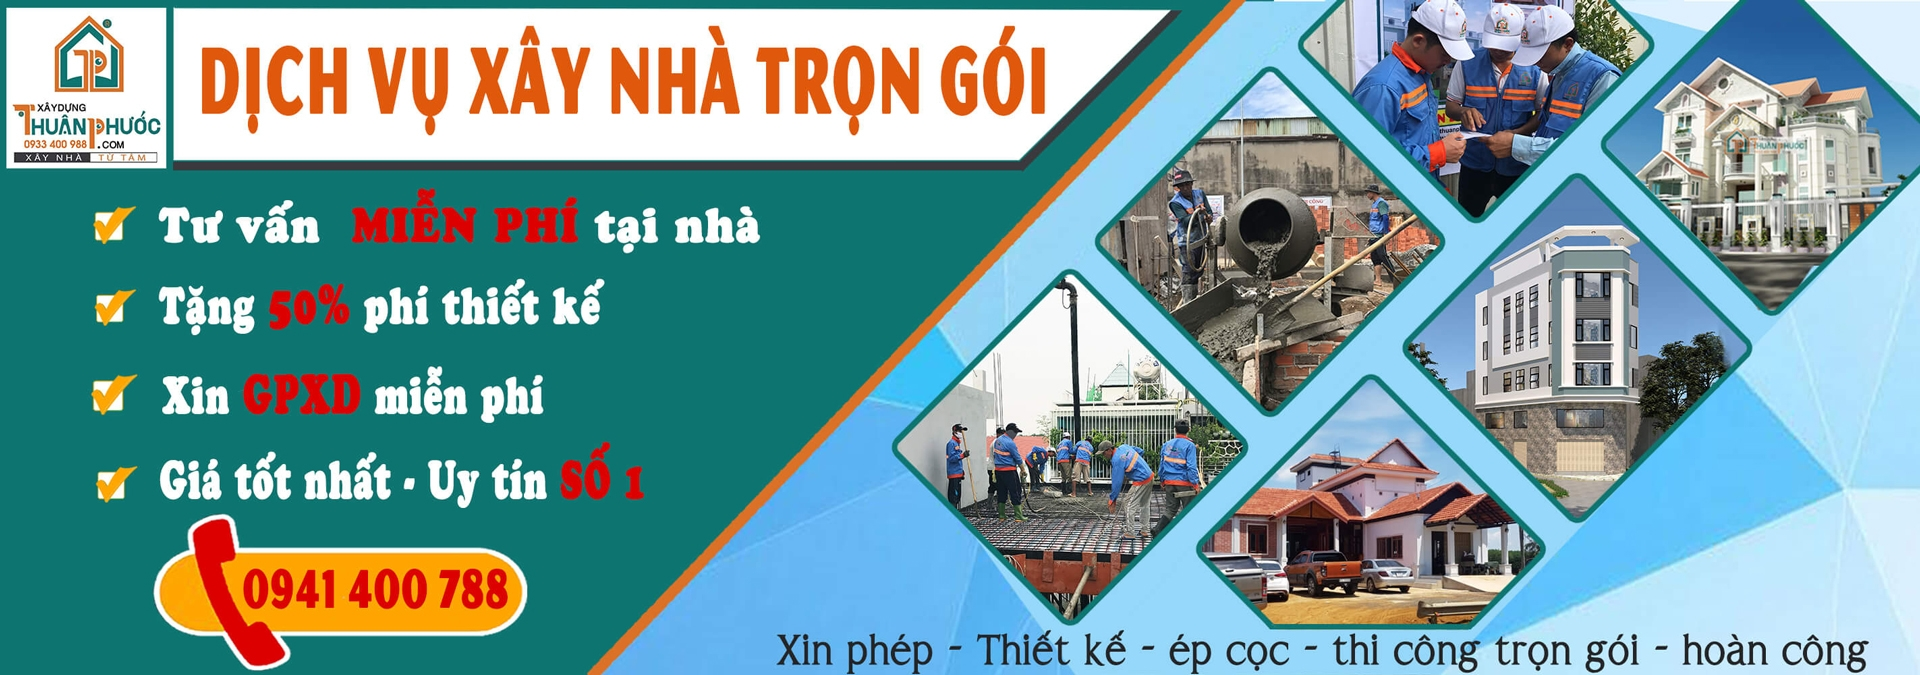 Xây Dựng Thuận Phước (@xaydungthuanphuoc) Cover Image